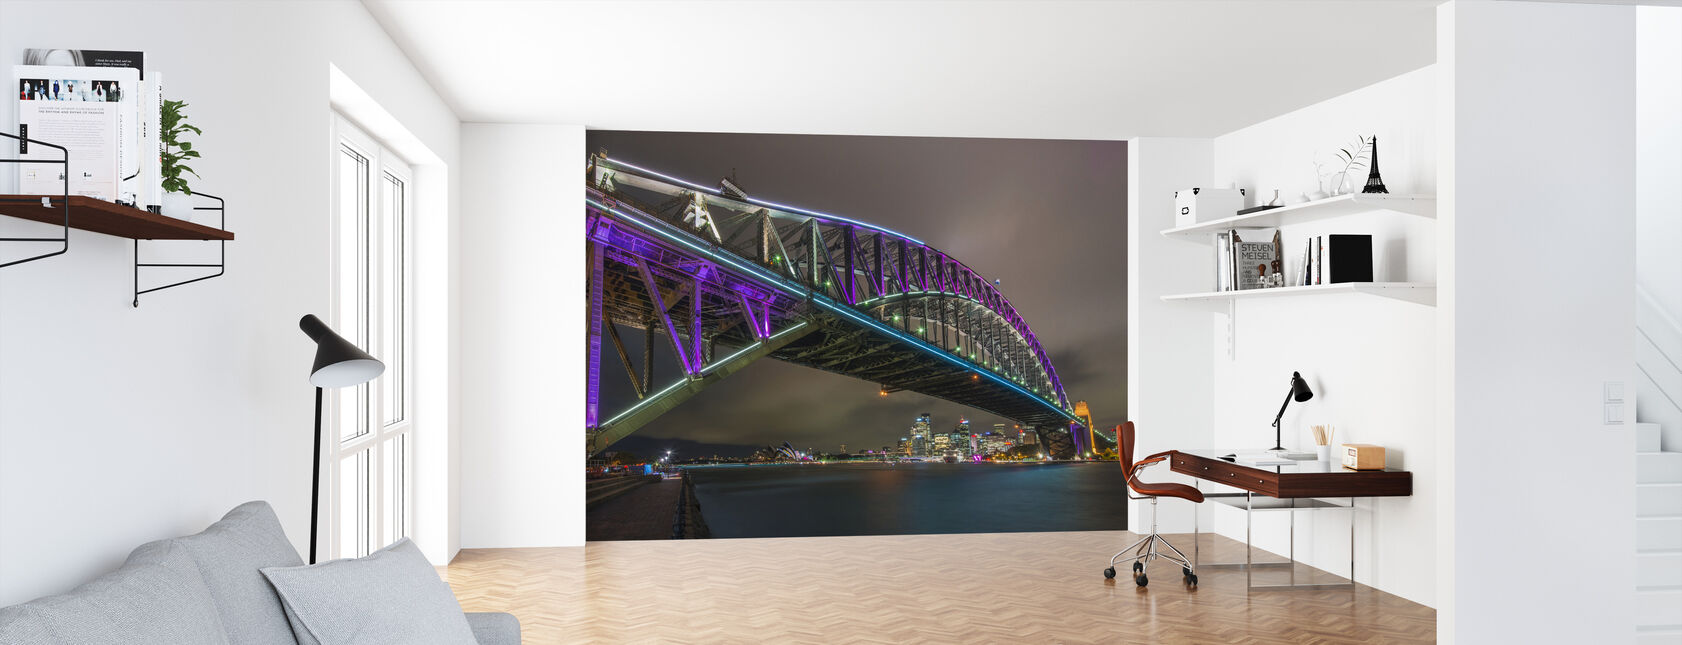 Sydney Harbour Bridge - Wallpaper - Office